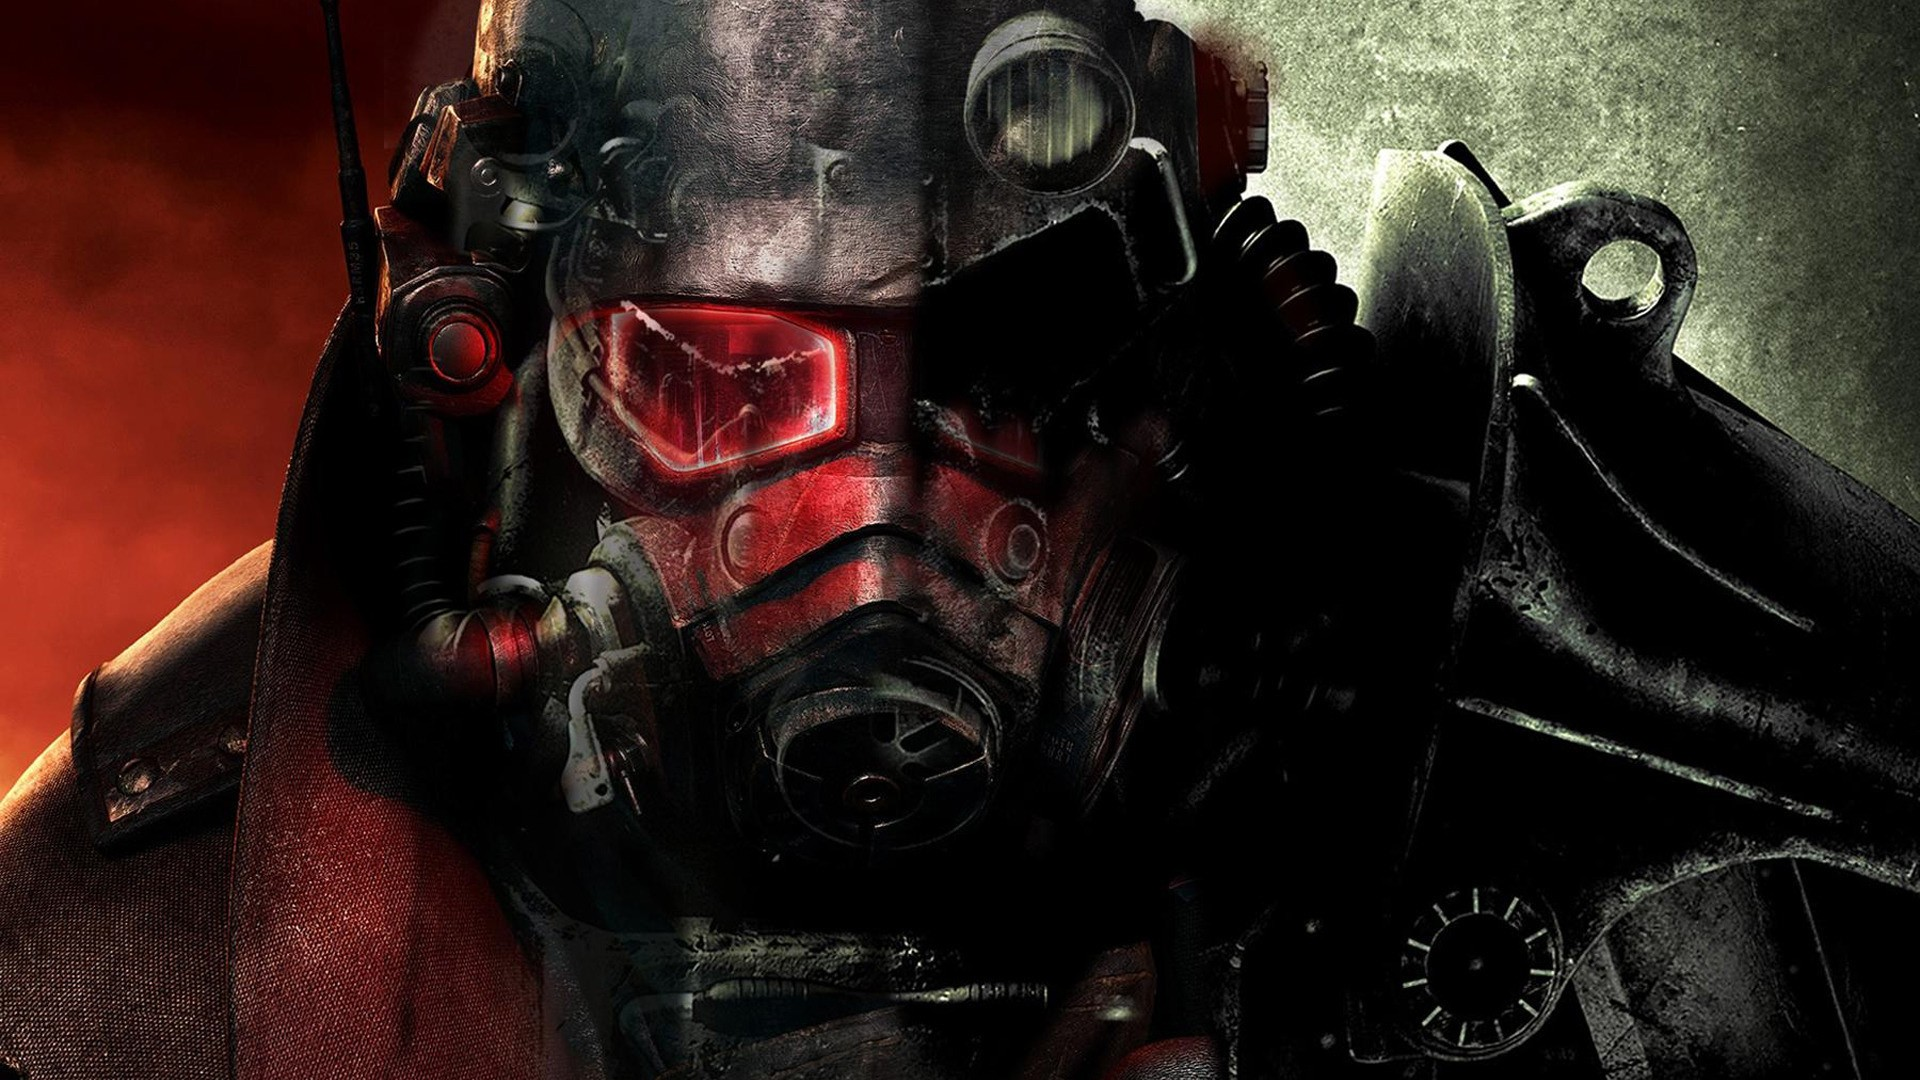 Fallout 4 Wallpaper 1920x1080 ① Download Free Amazing High